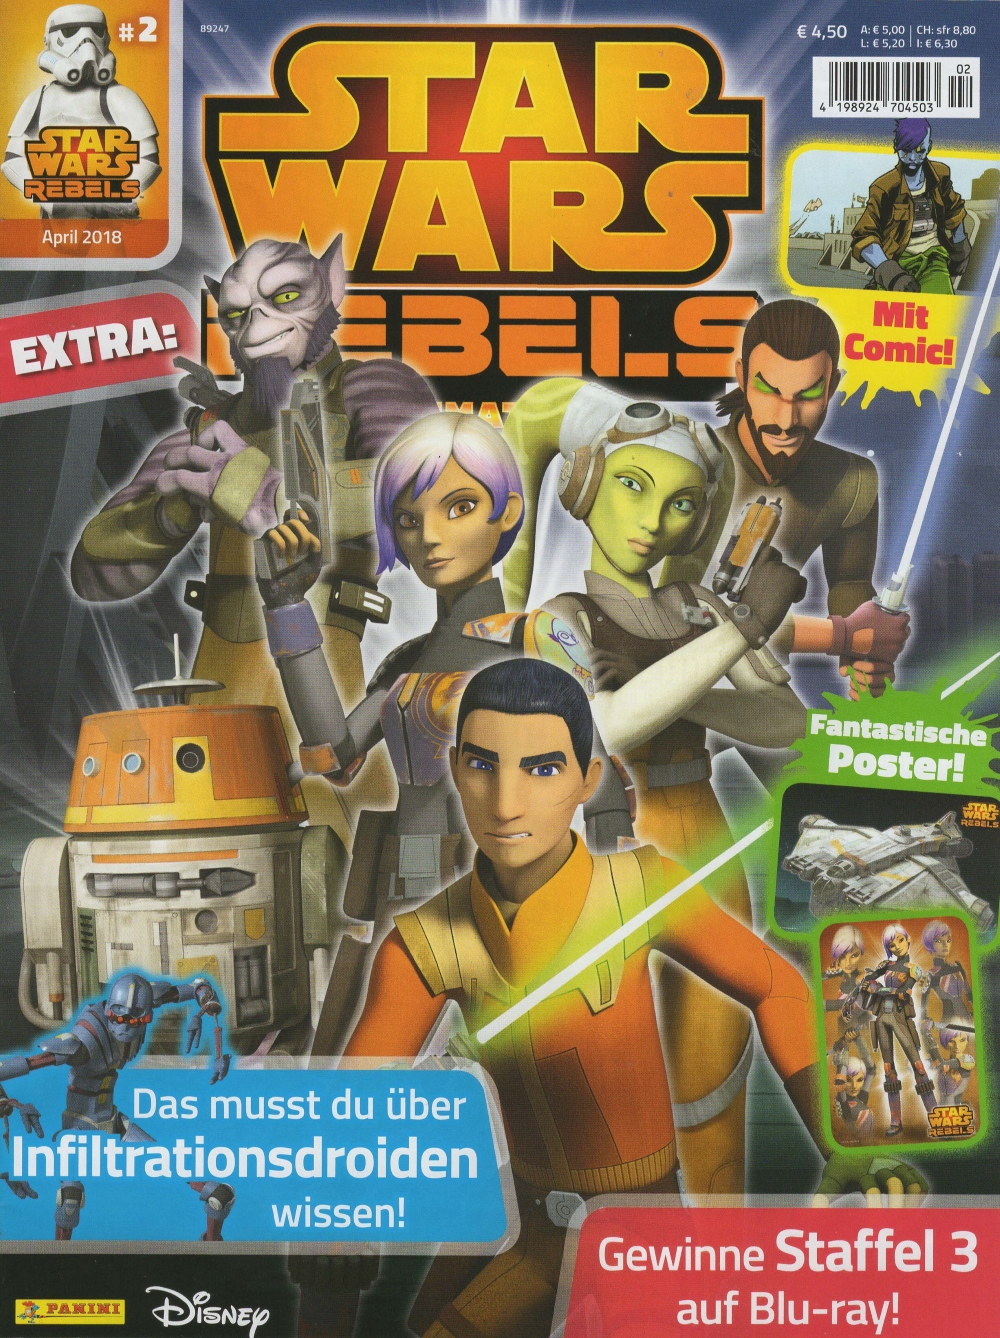 Star Wars Rebels: Divide and Conquer